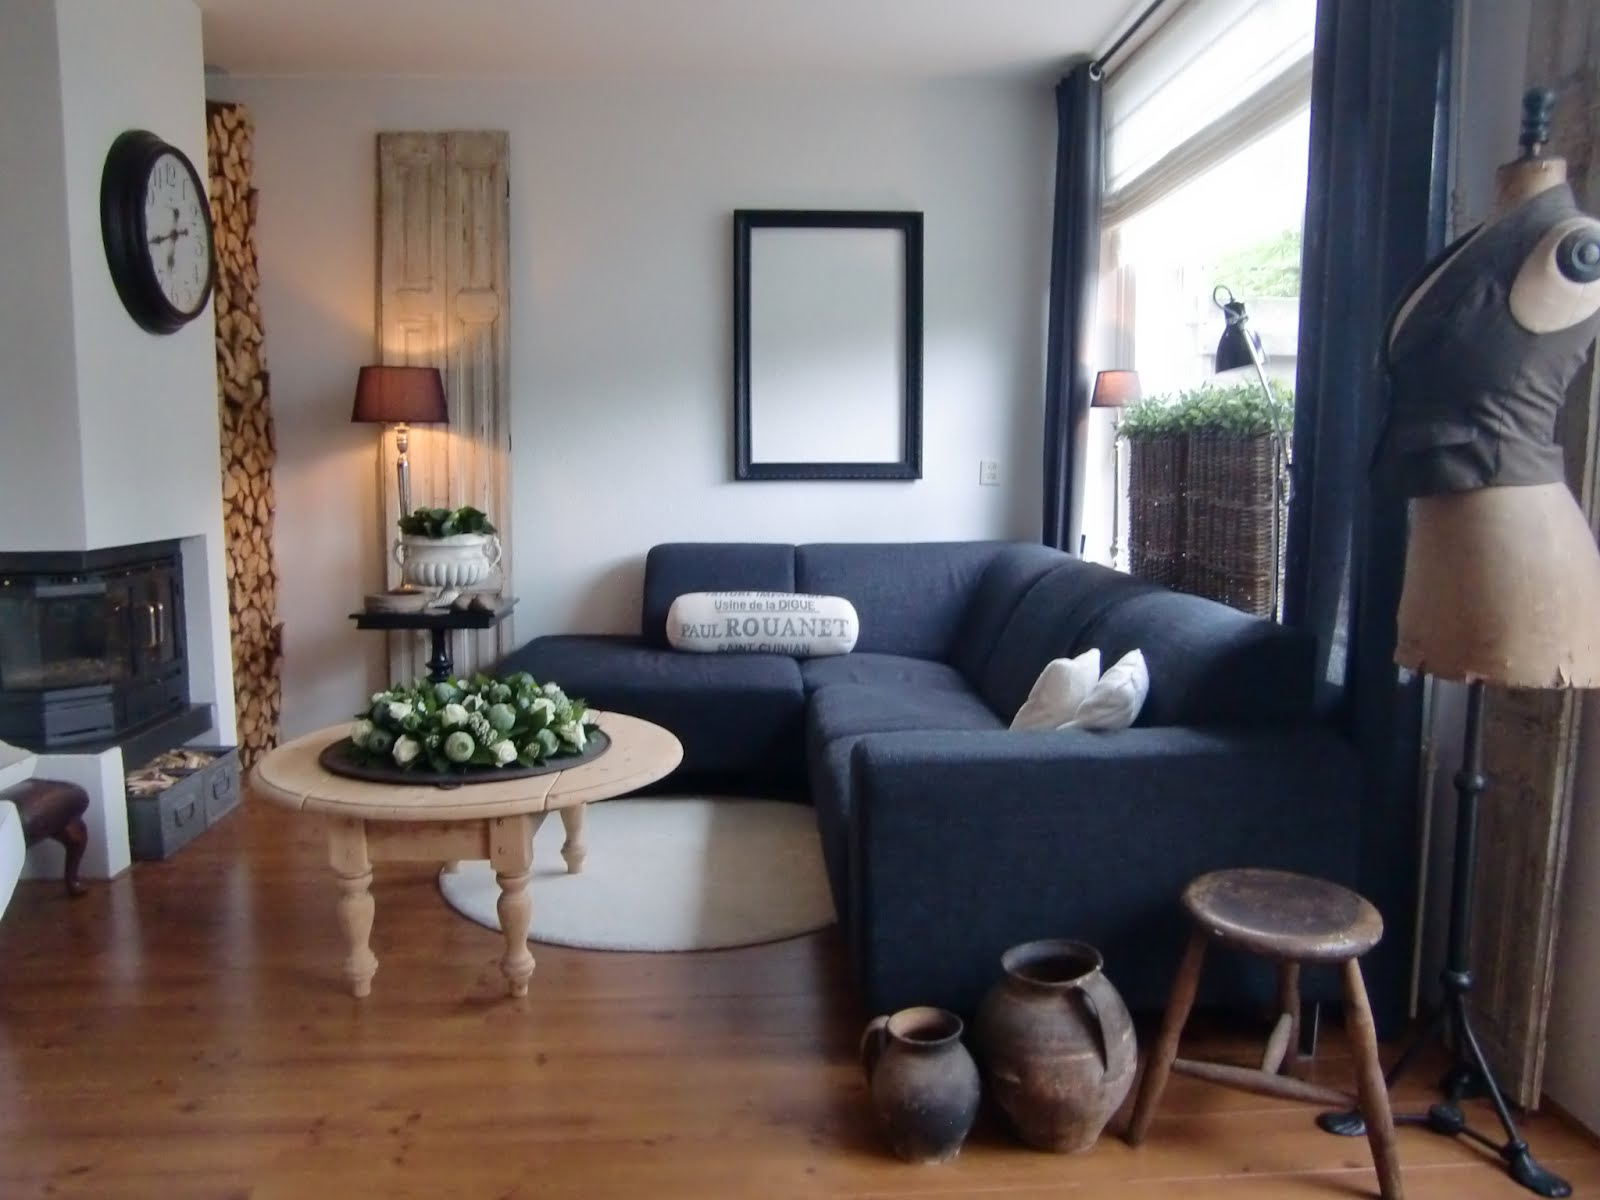 A Place Called Home: Onze woonkamer